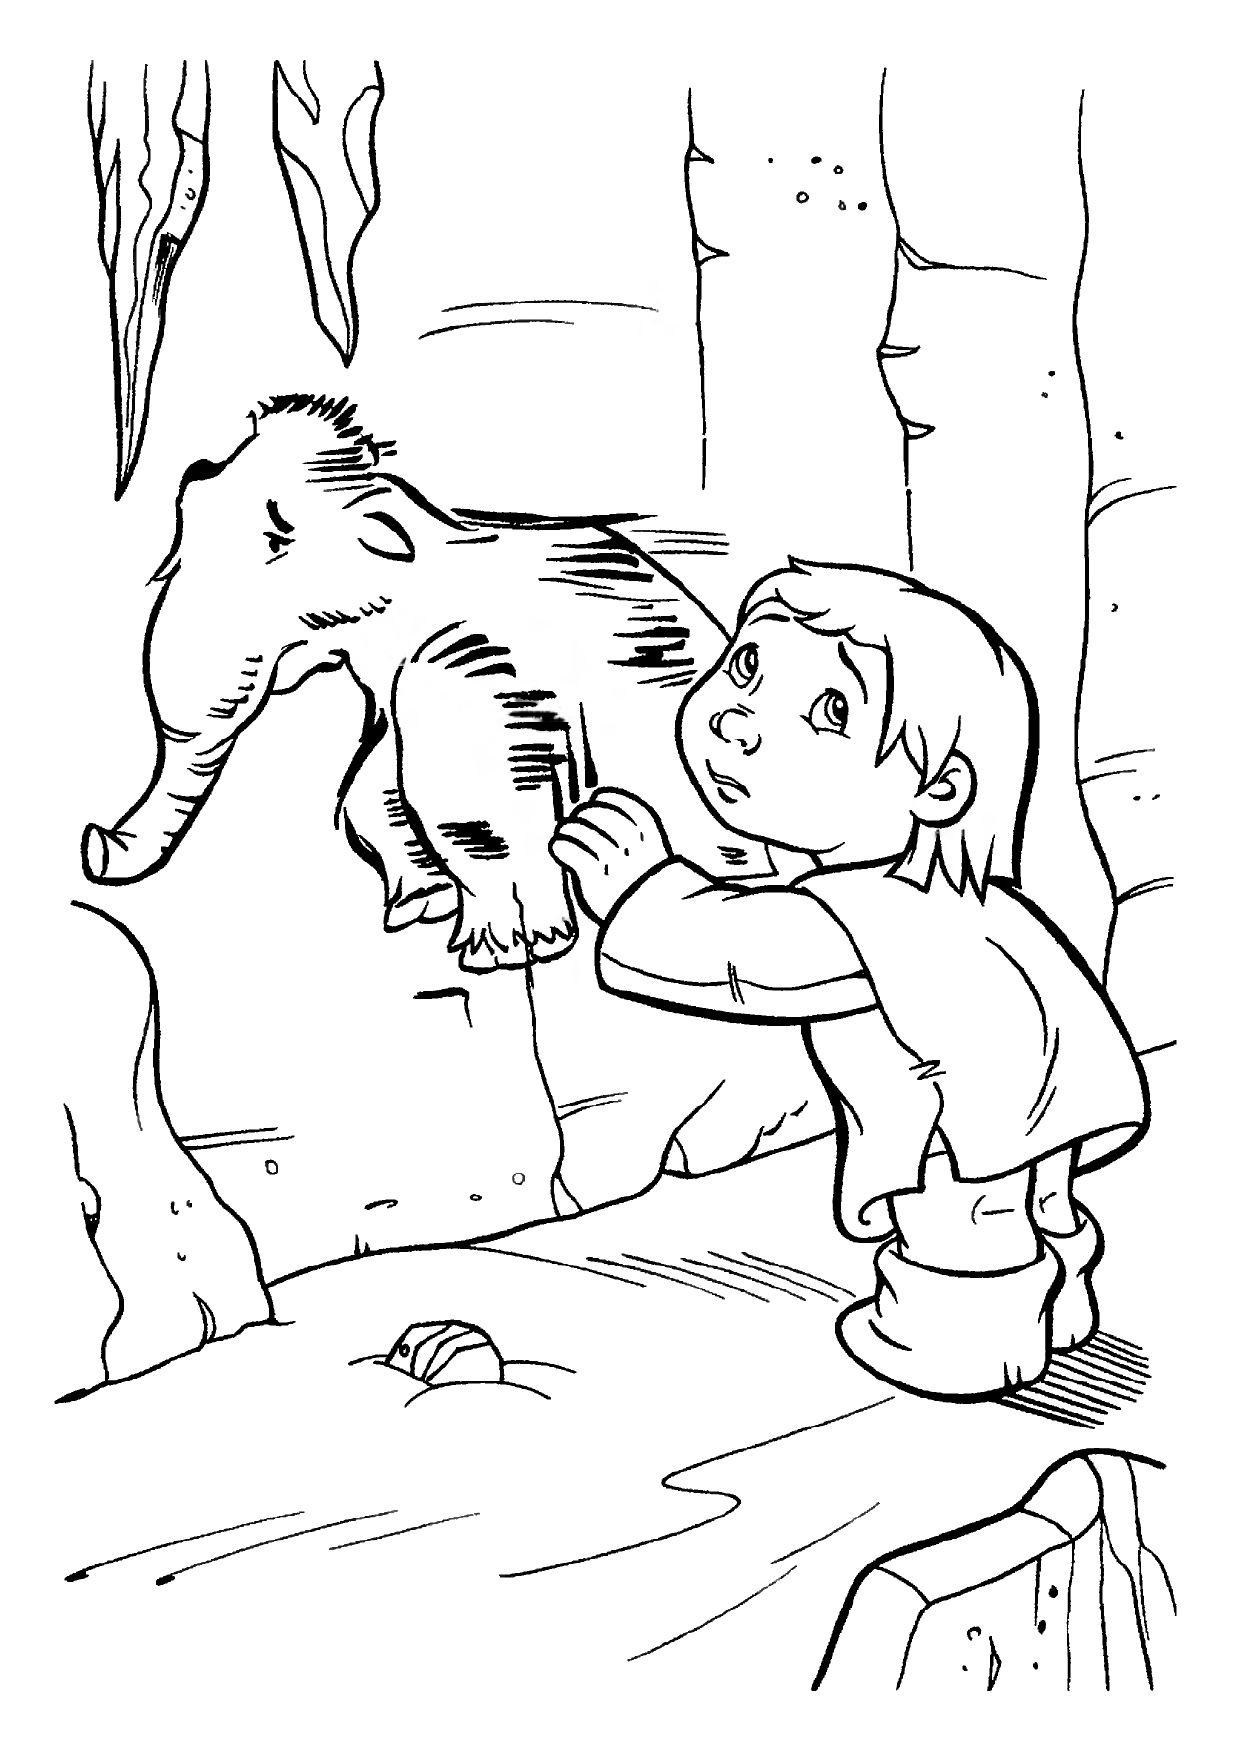 ice age printables ice age coloring pages coloring pages to download and print printables ice age